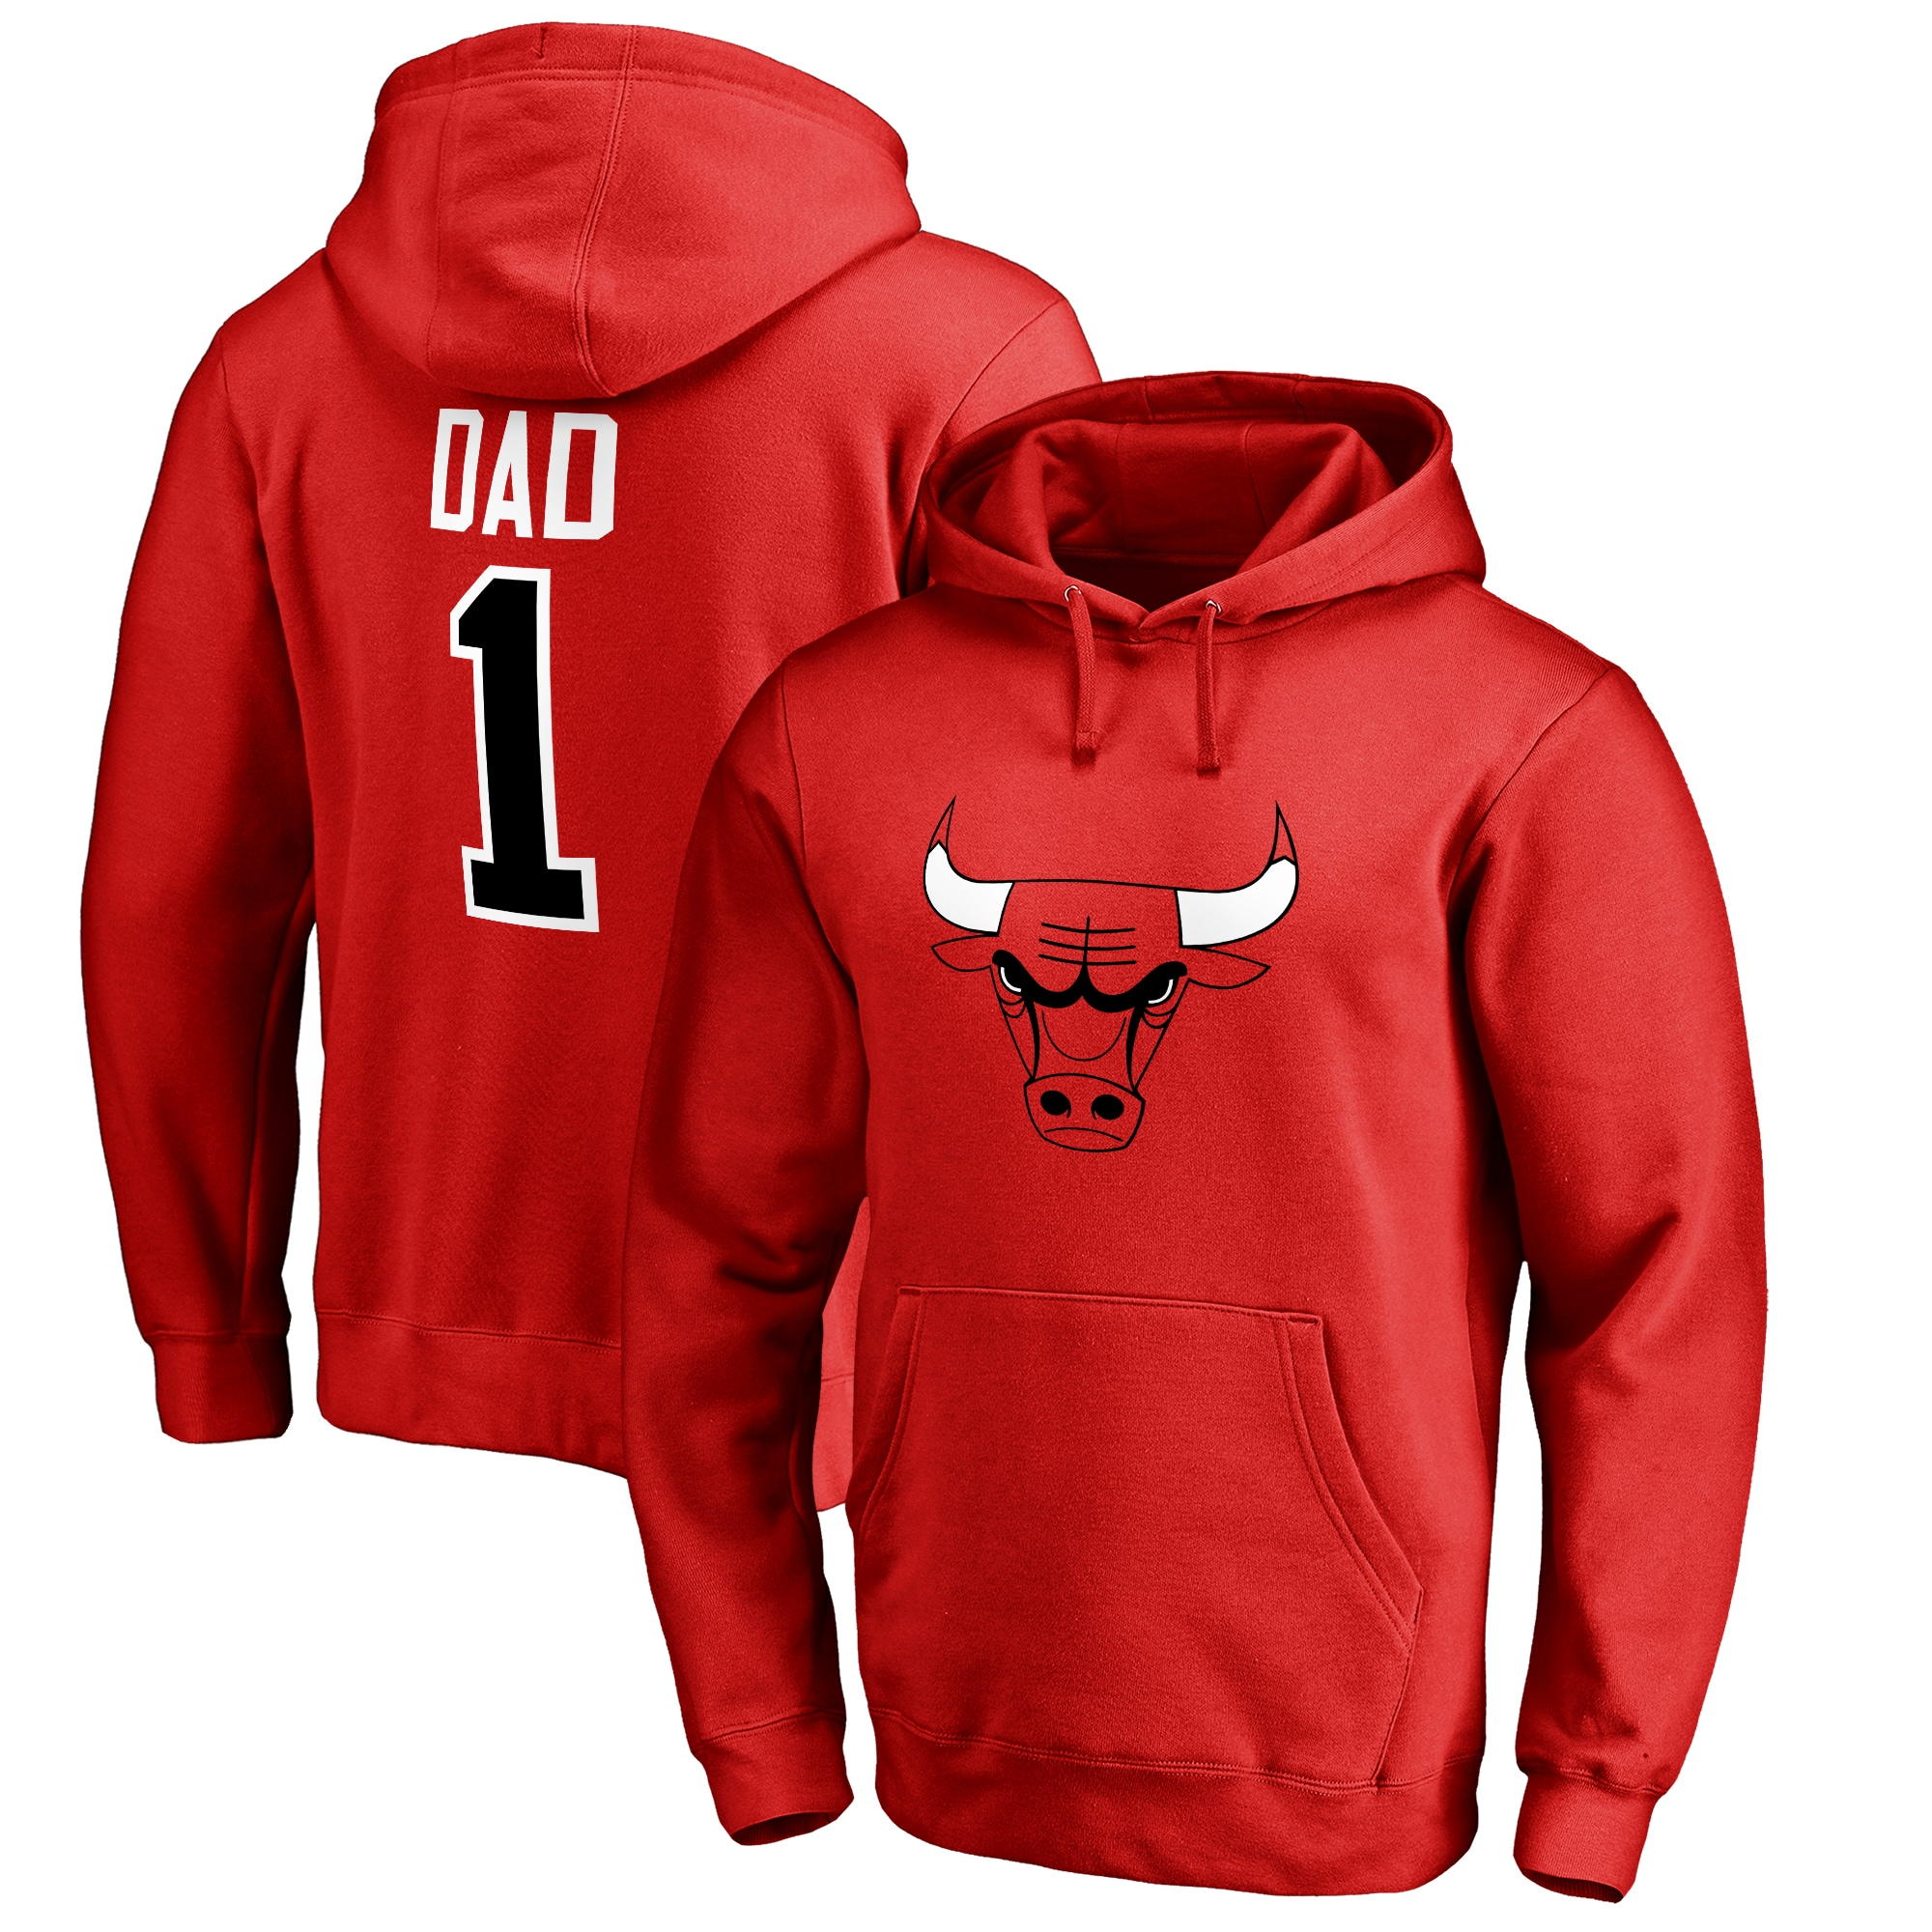 Chicago Bulls #1 Dad Pullover Hoodie - Red